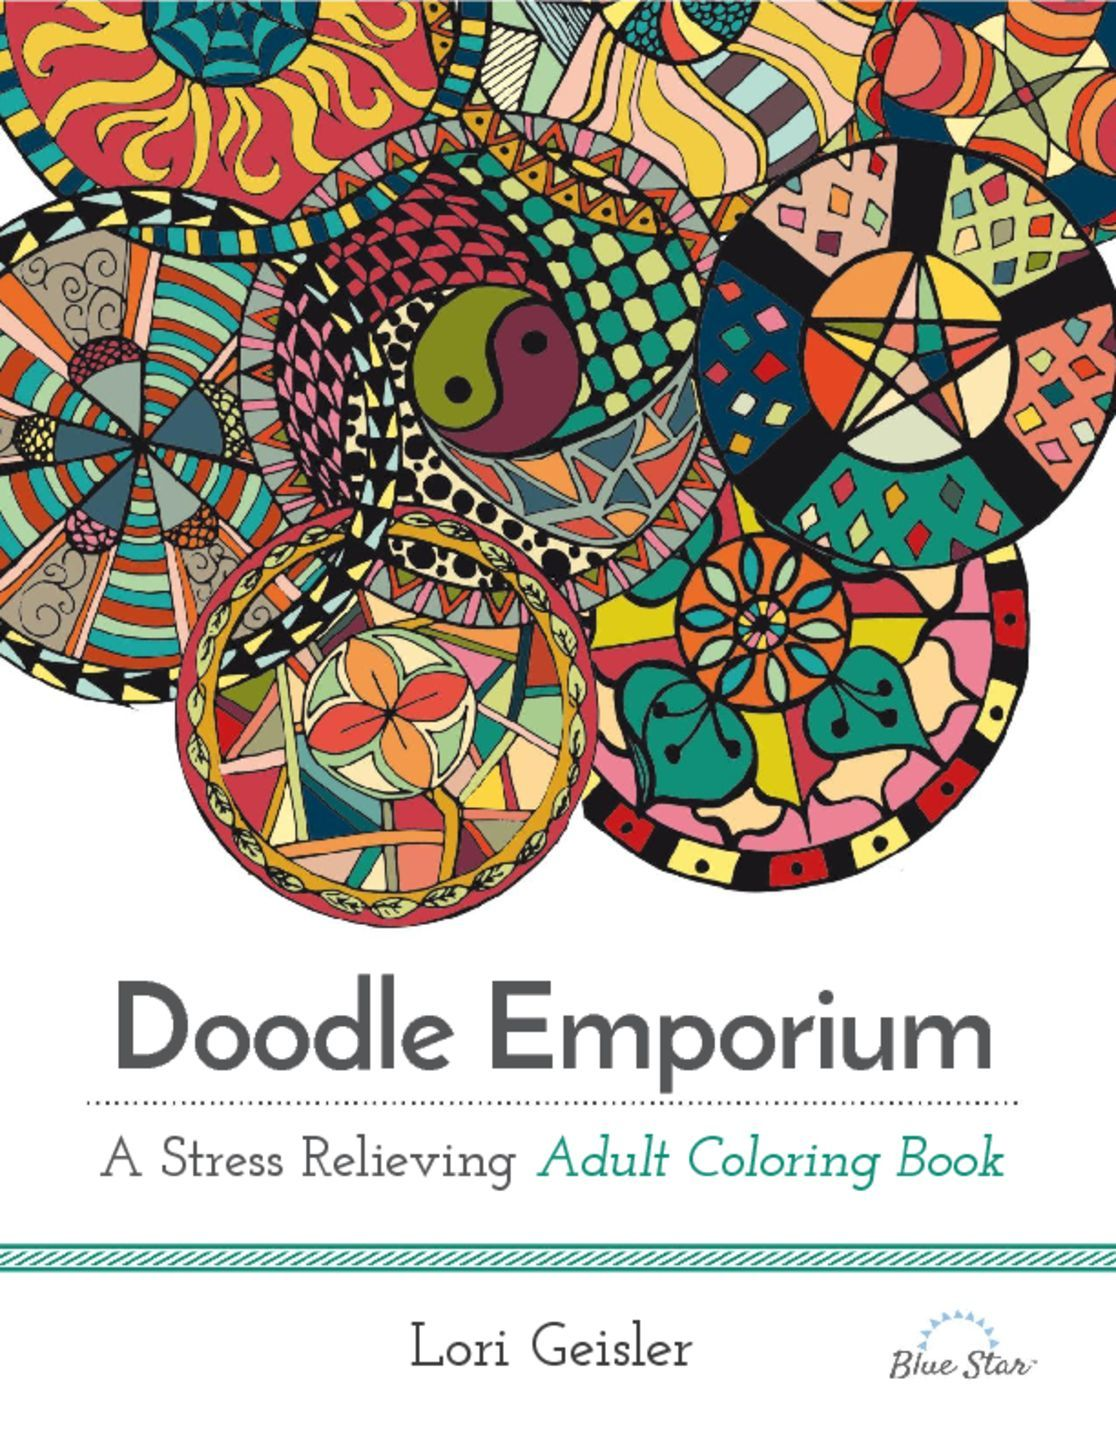 Doodle Emporium A Stress Relieving Adult Coloring Book Digital